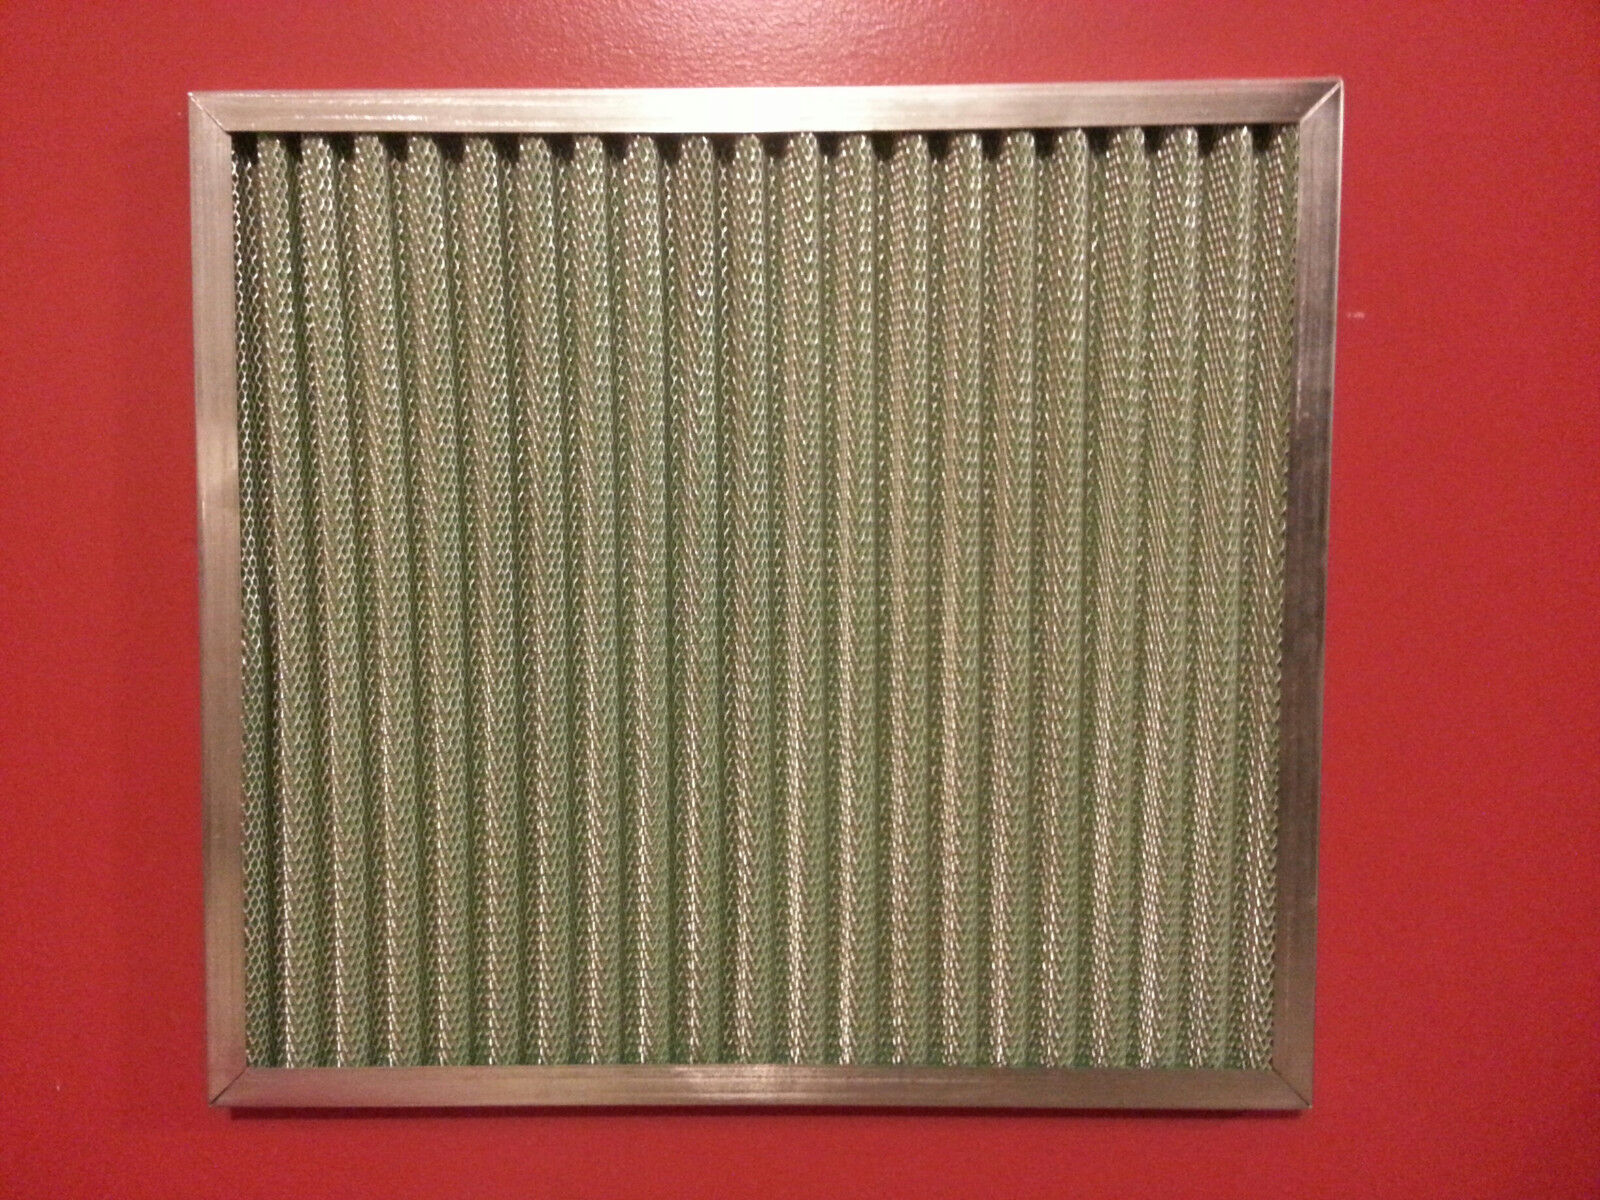 ULTIMATE ALLERGY HOME PLEATED AIR FILTER! WASHABLE PERMANENT REUSABLE FURNACE AC